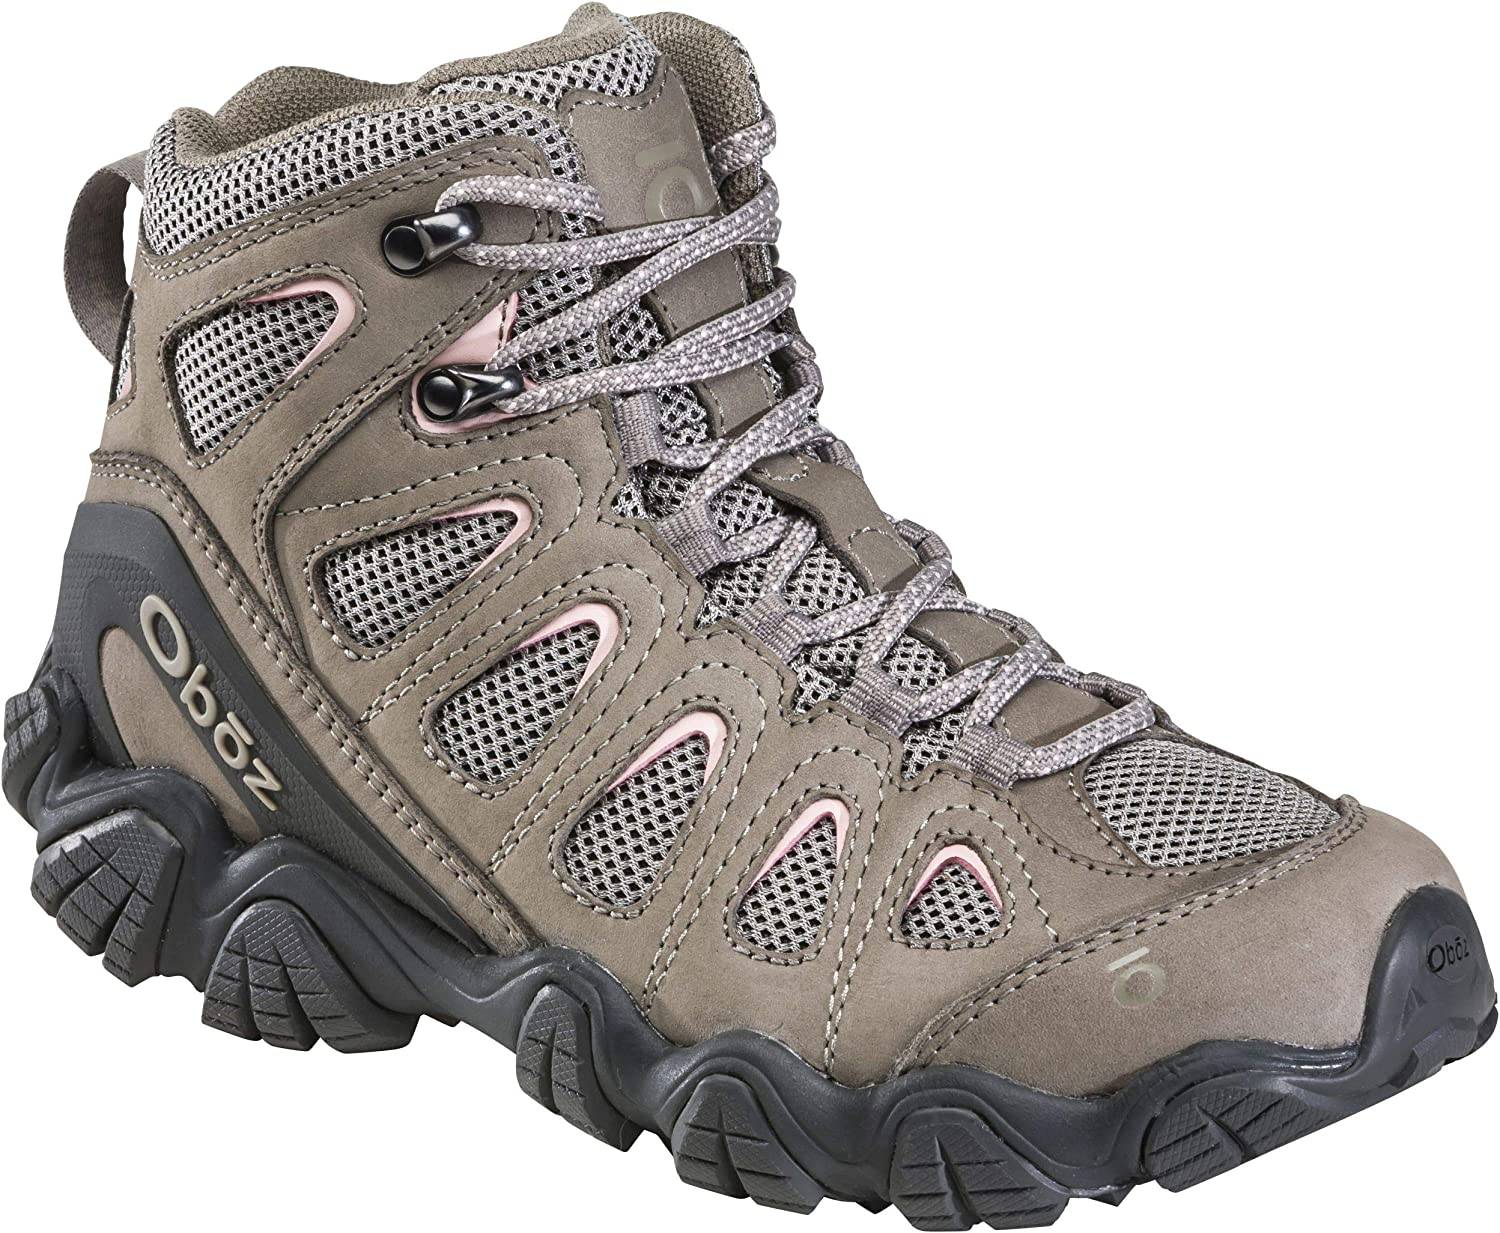 Oboz Sawtooth II Max 67% OFF Mid Women's Hiking Boot - Selling and selling